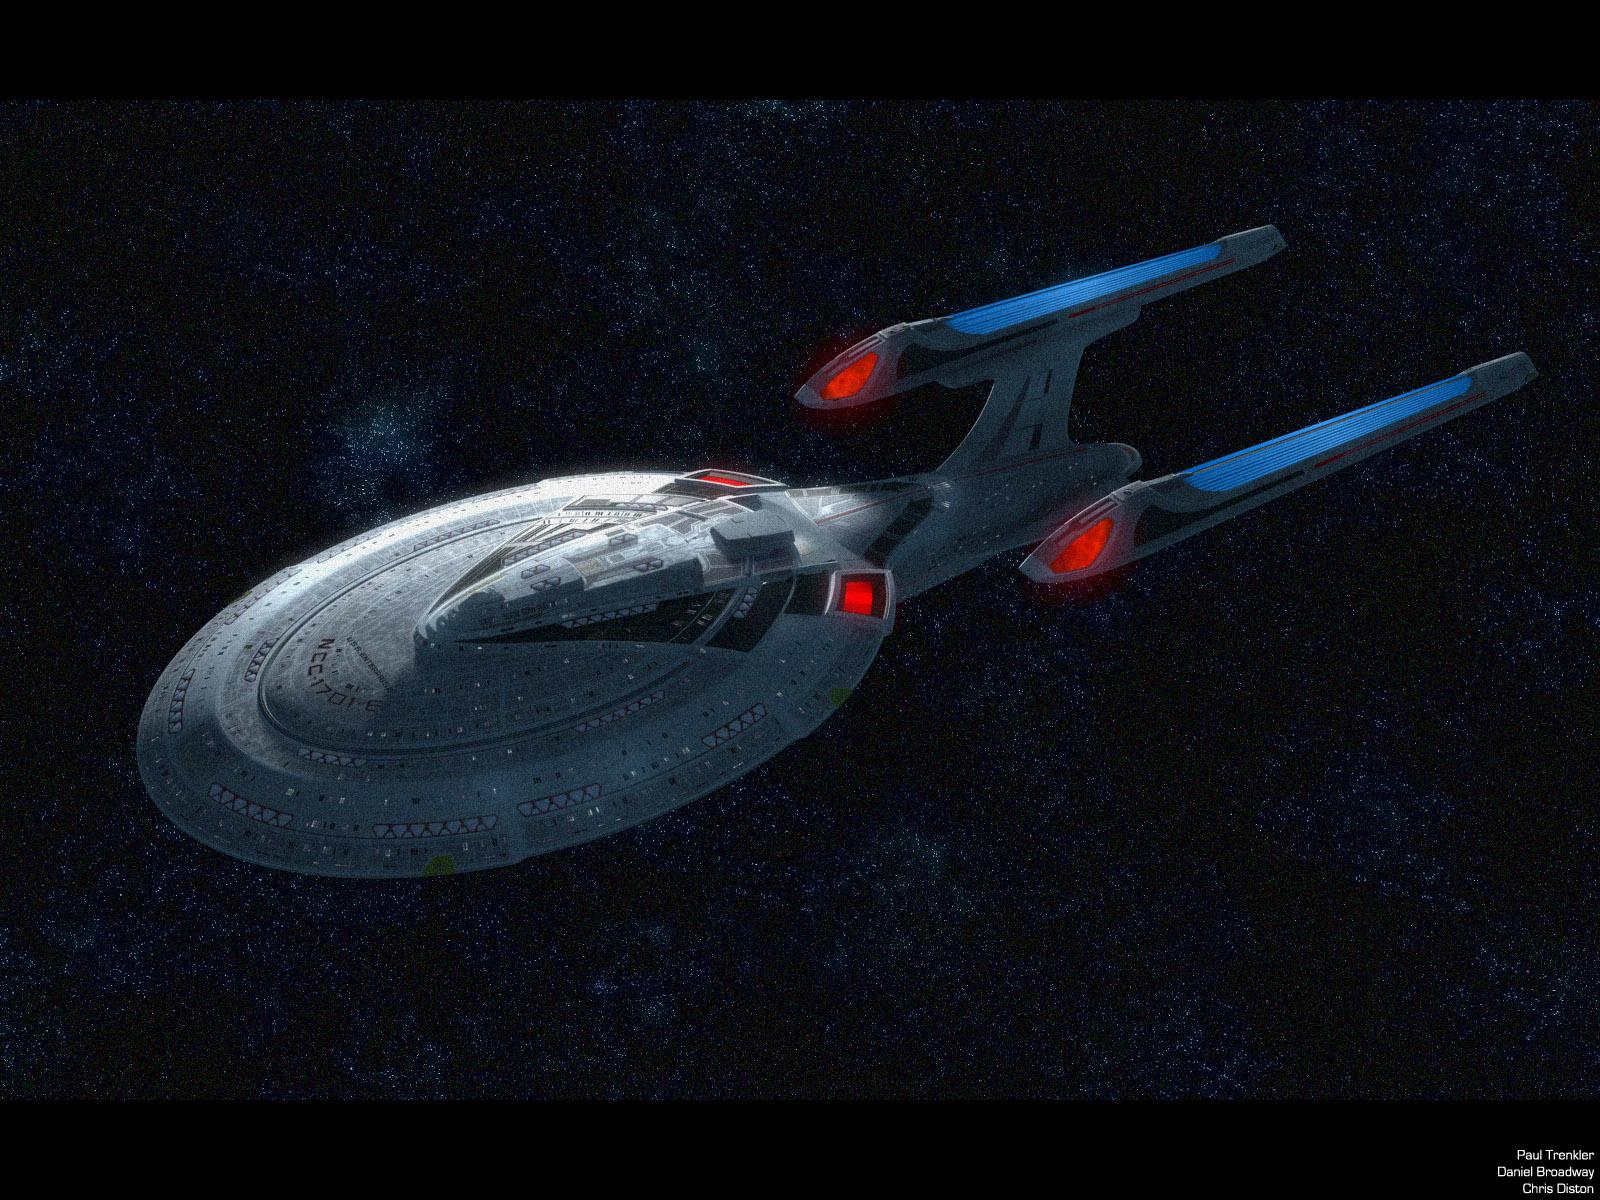 star trek sovereign uss enterprise HD Wallpaper   Movies TV 561337 1600x1200